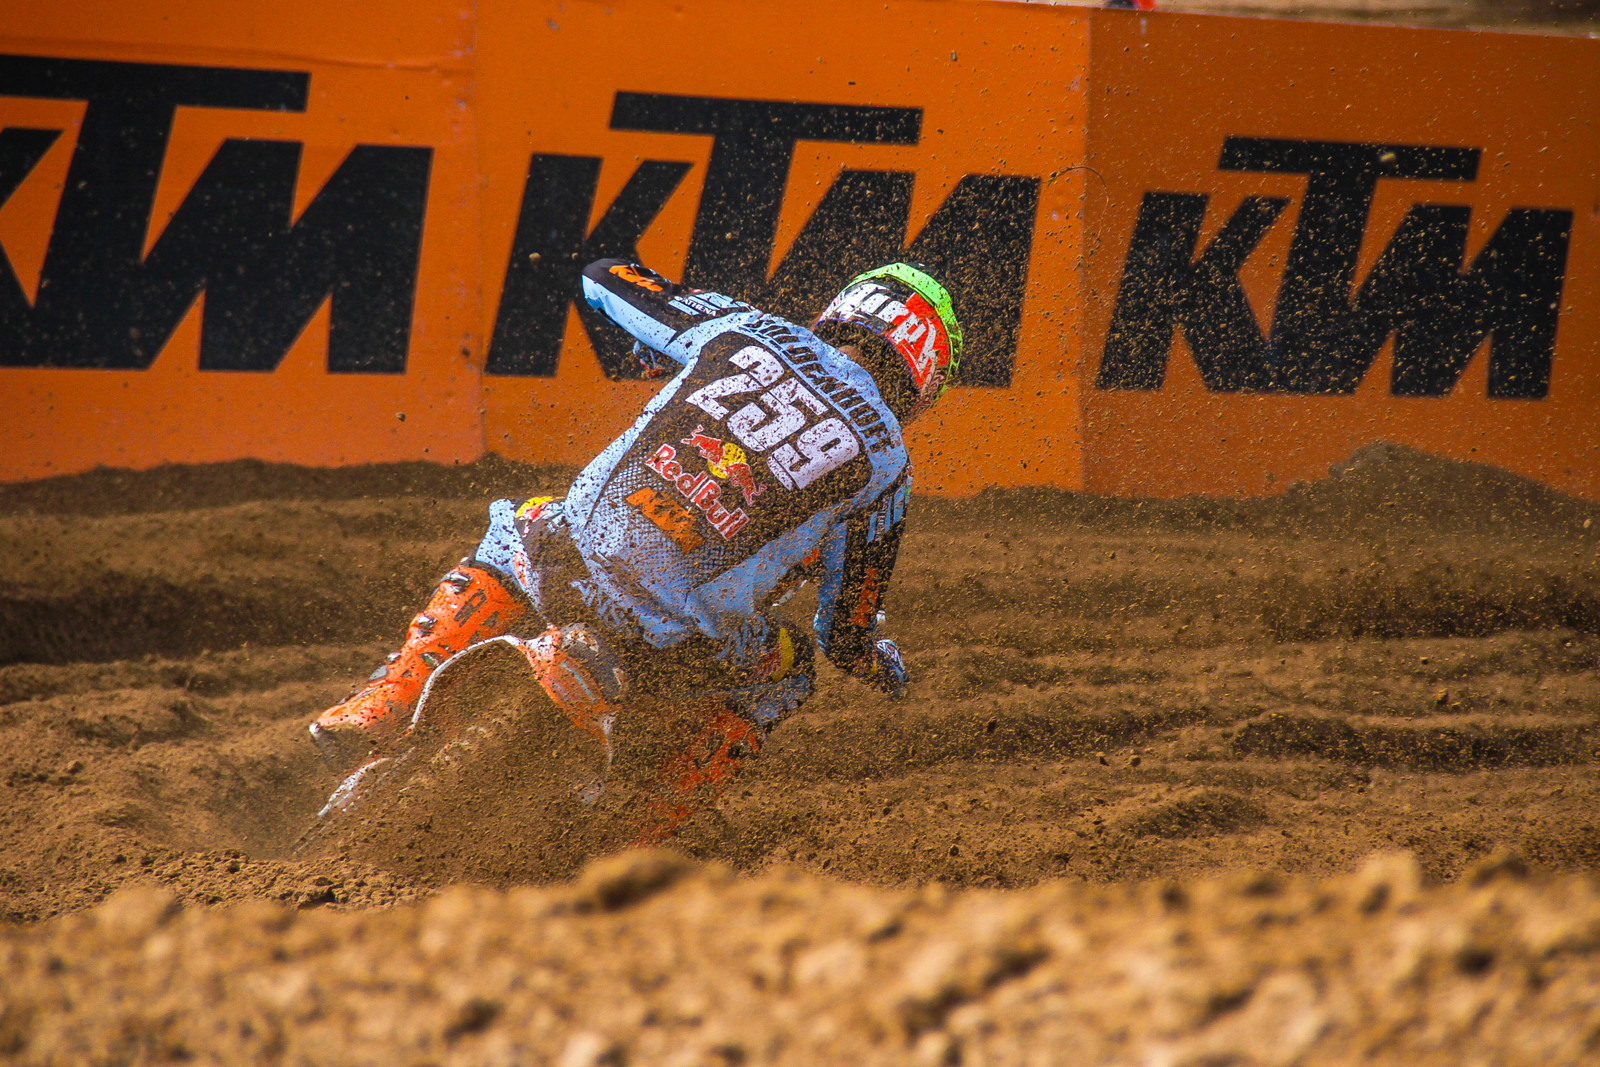 Glenn Coldenhoff Signs 1-Year Contract Extension with Red Bull KTM